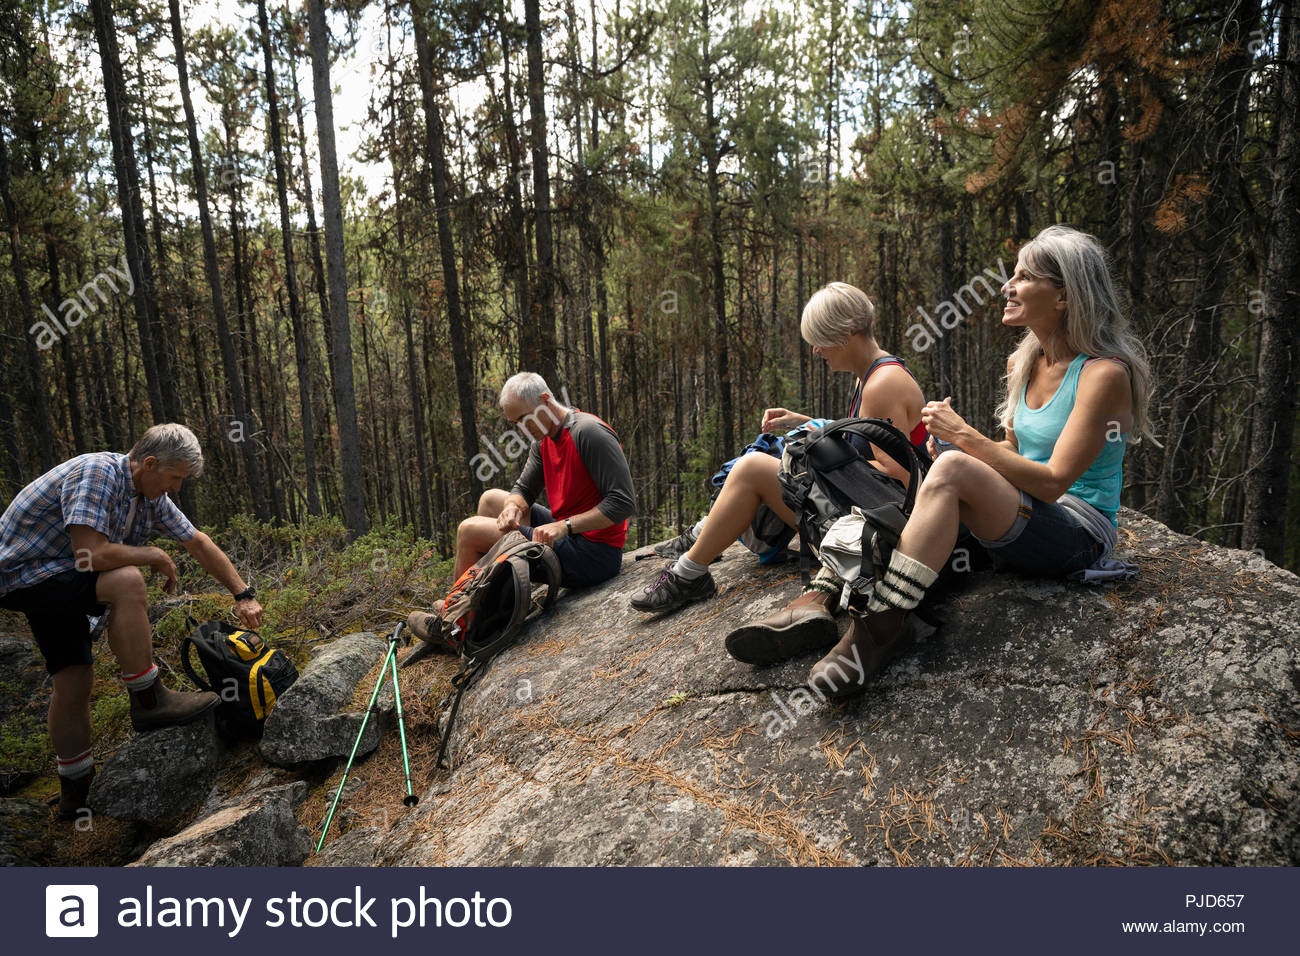 Mature couples taking a break from hiking, resting on forest rock - Stock Image